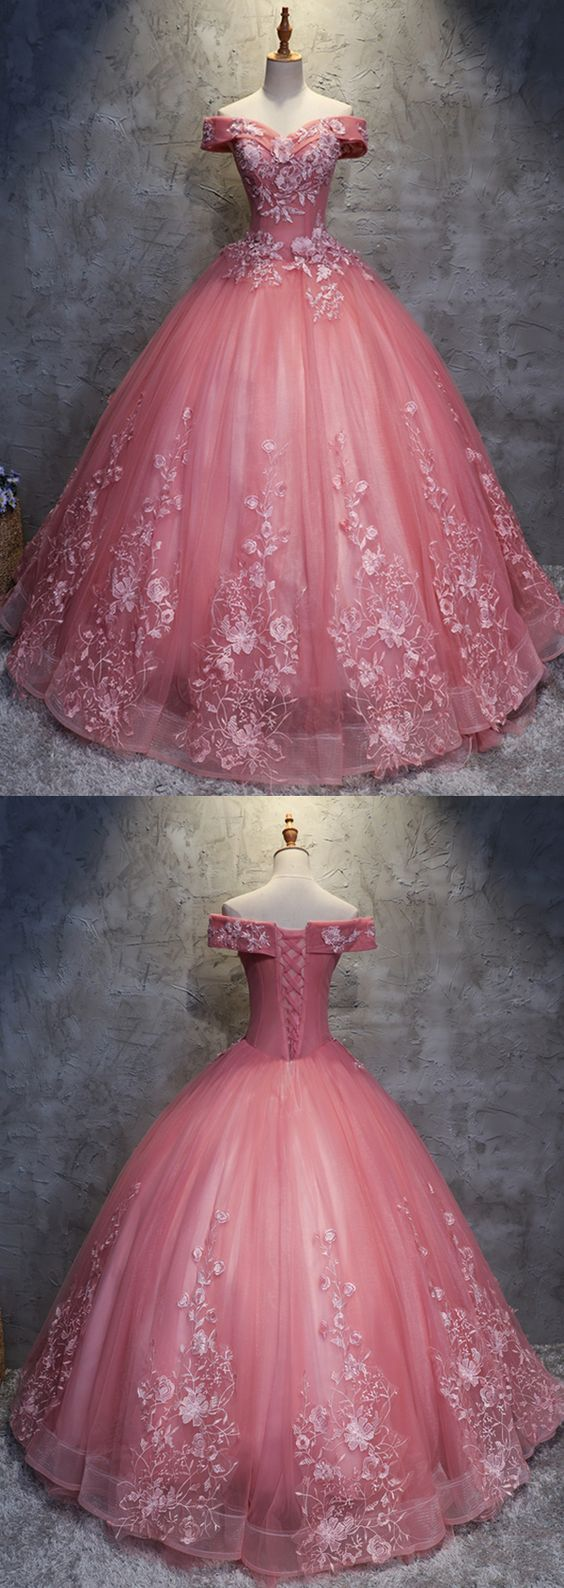 Tendencias de vestidos para quince años | Prom, Gowns and Clothes